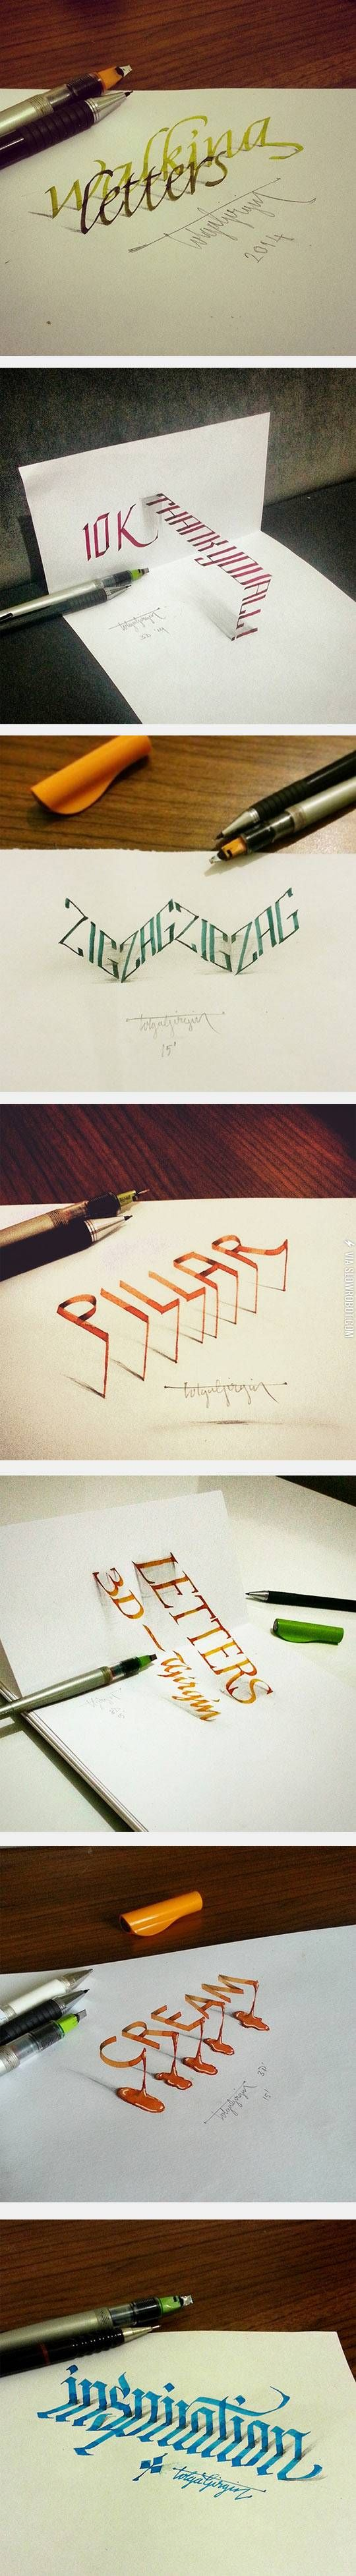 3D calligraphy.